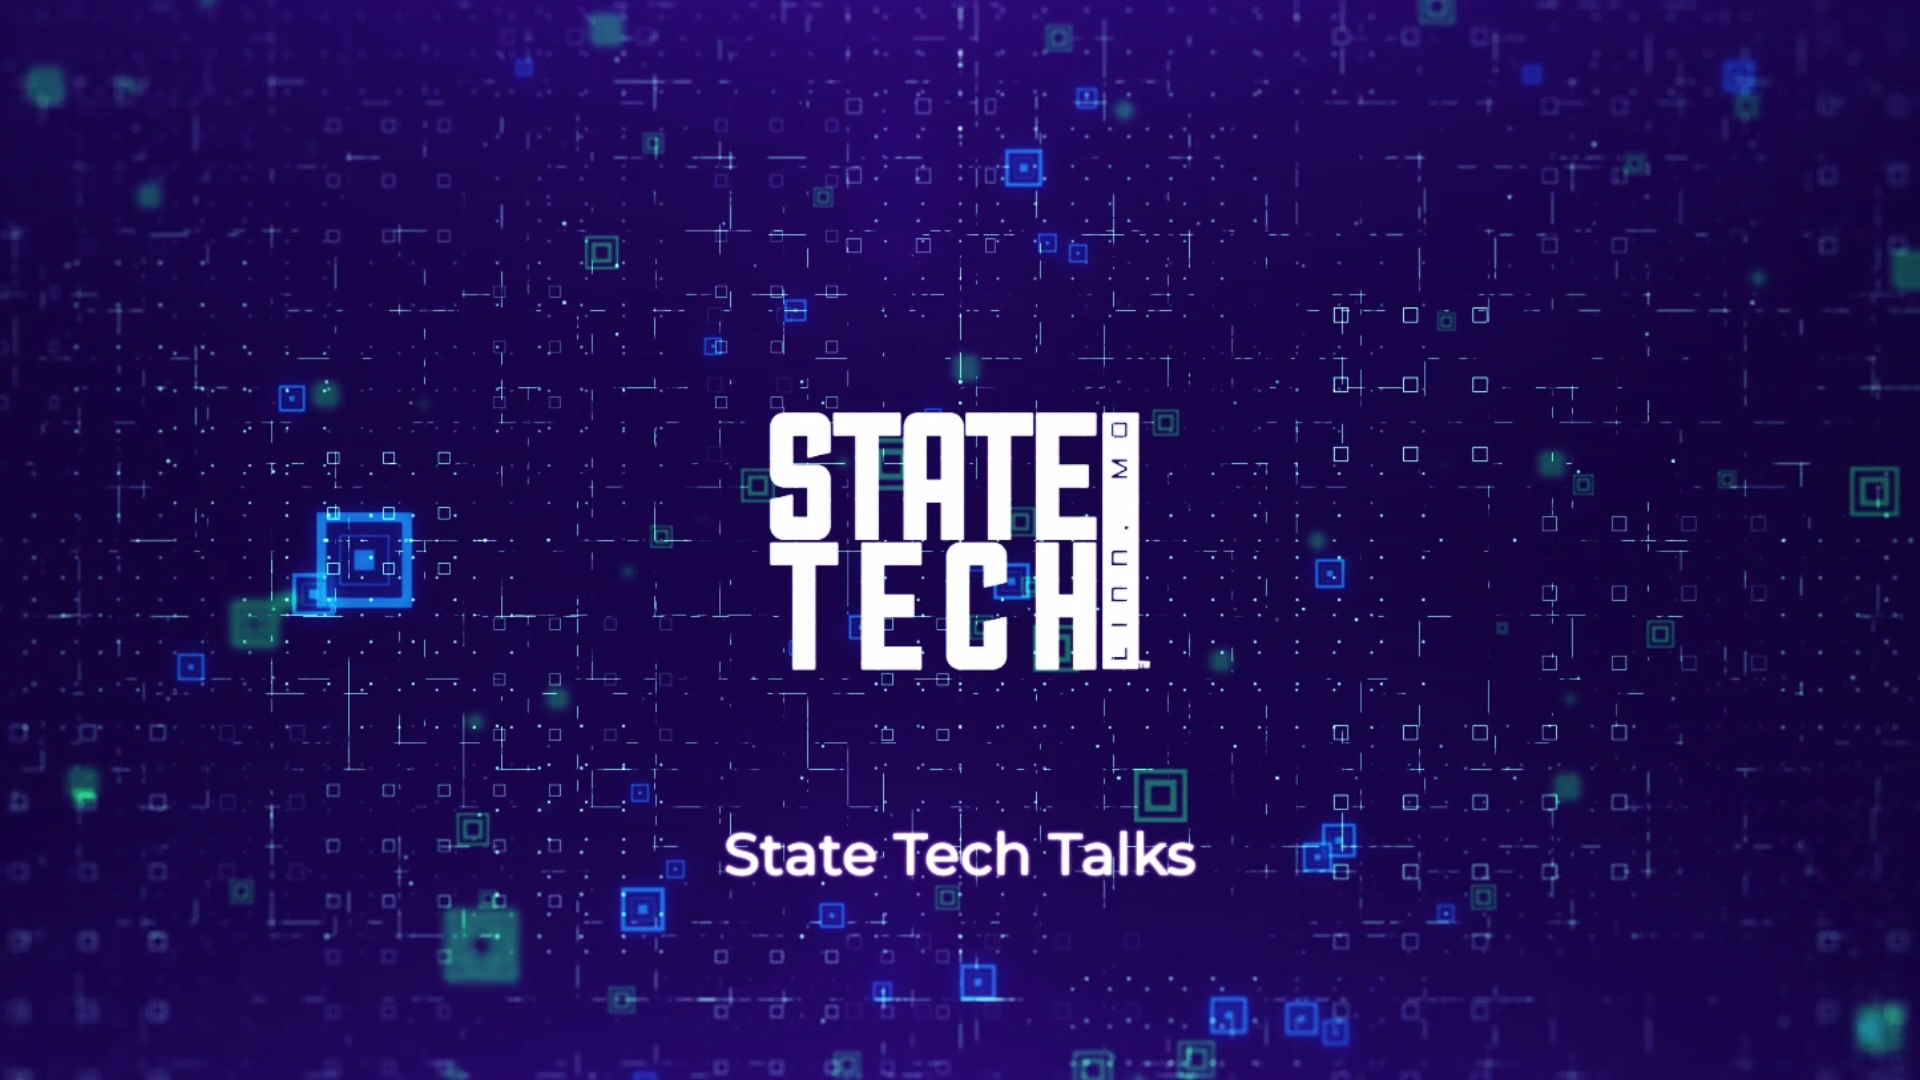 State-Tech-Talks